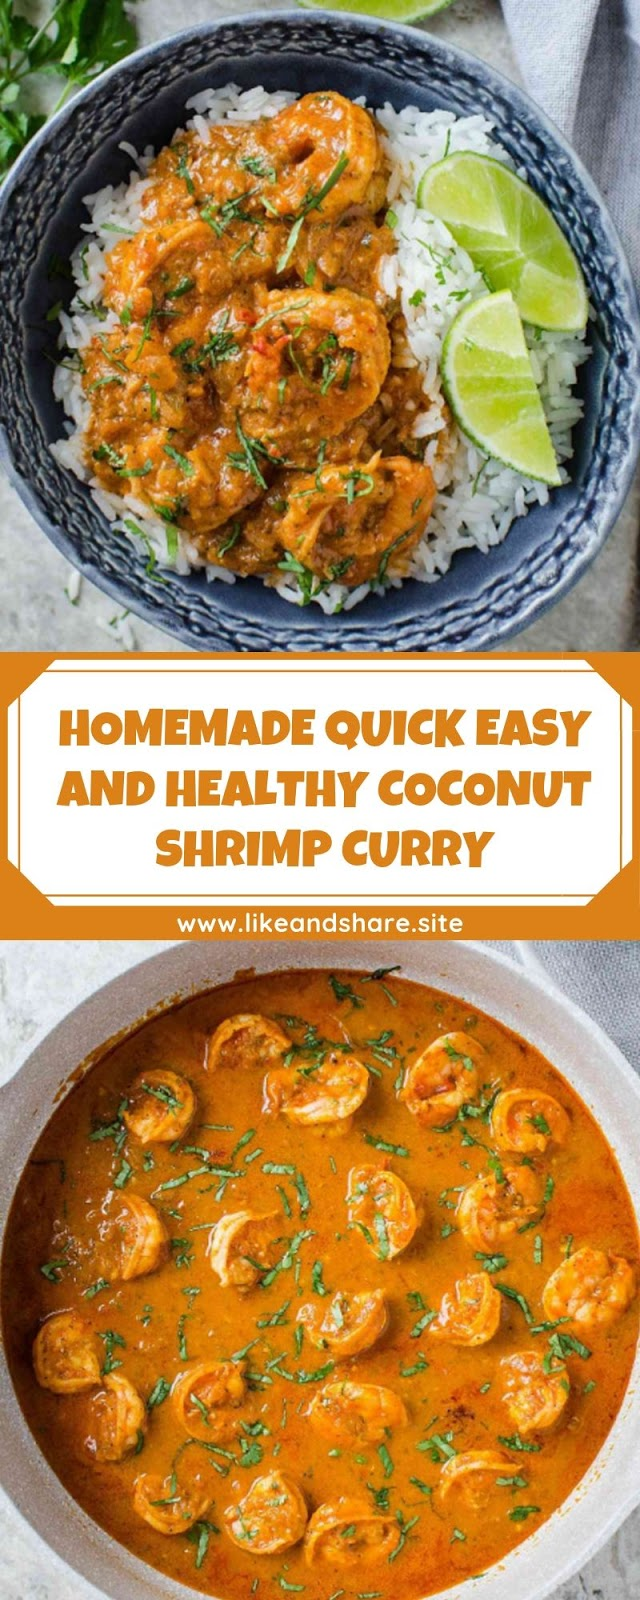 HOMEMADE QUICK EASY AND HEALTHY COCONUT SHRIMP CURRY